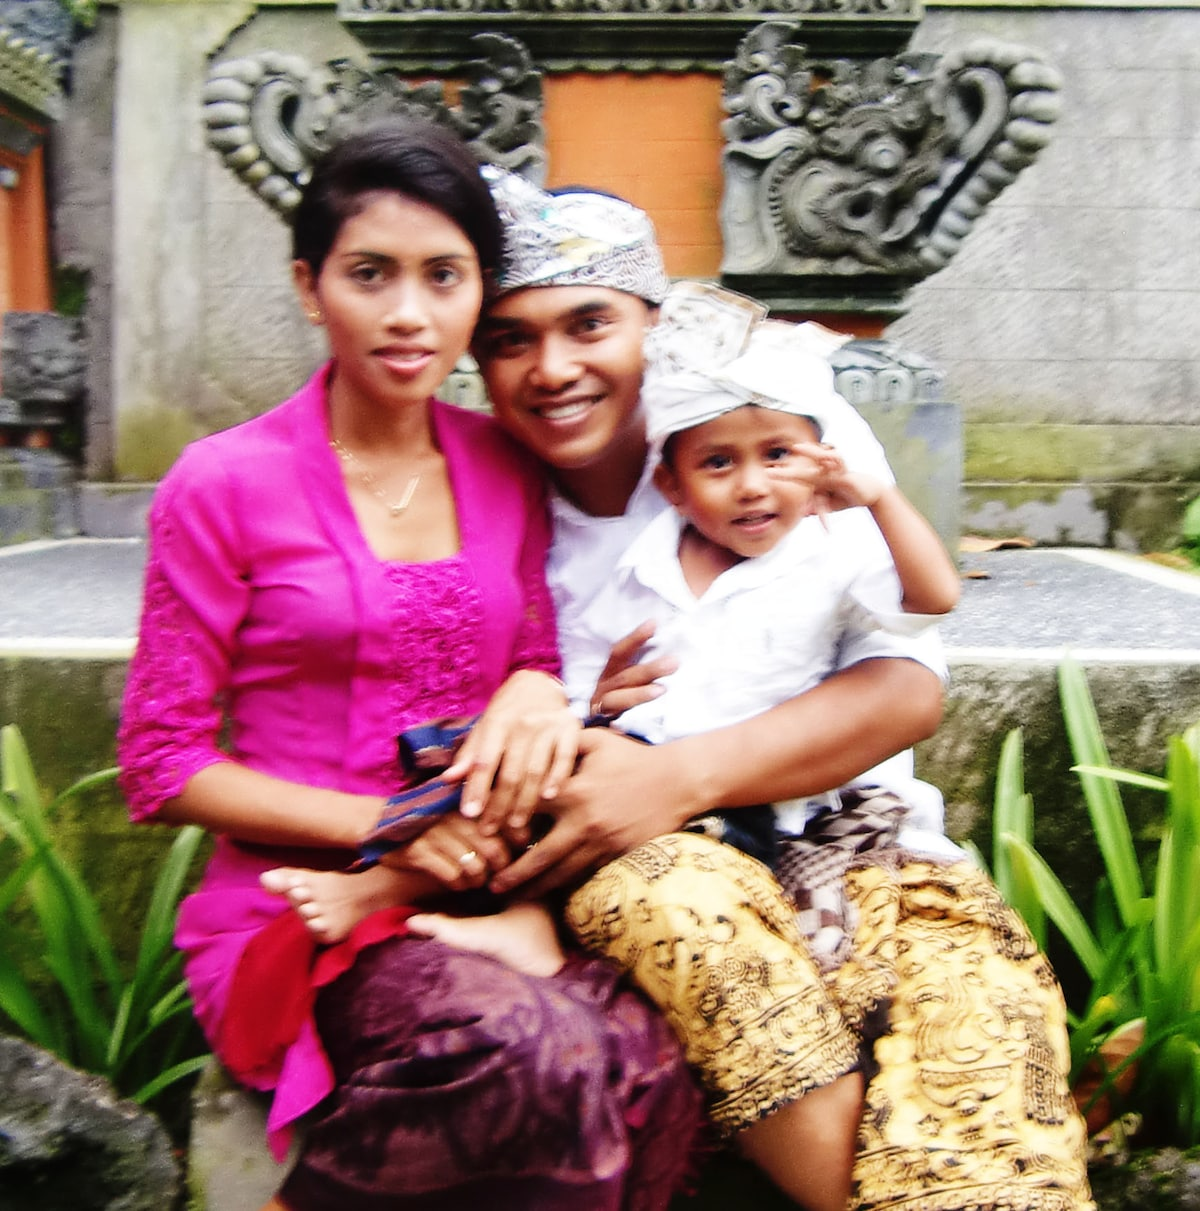 Komang from Ubud